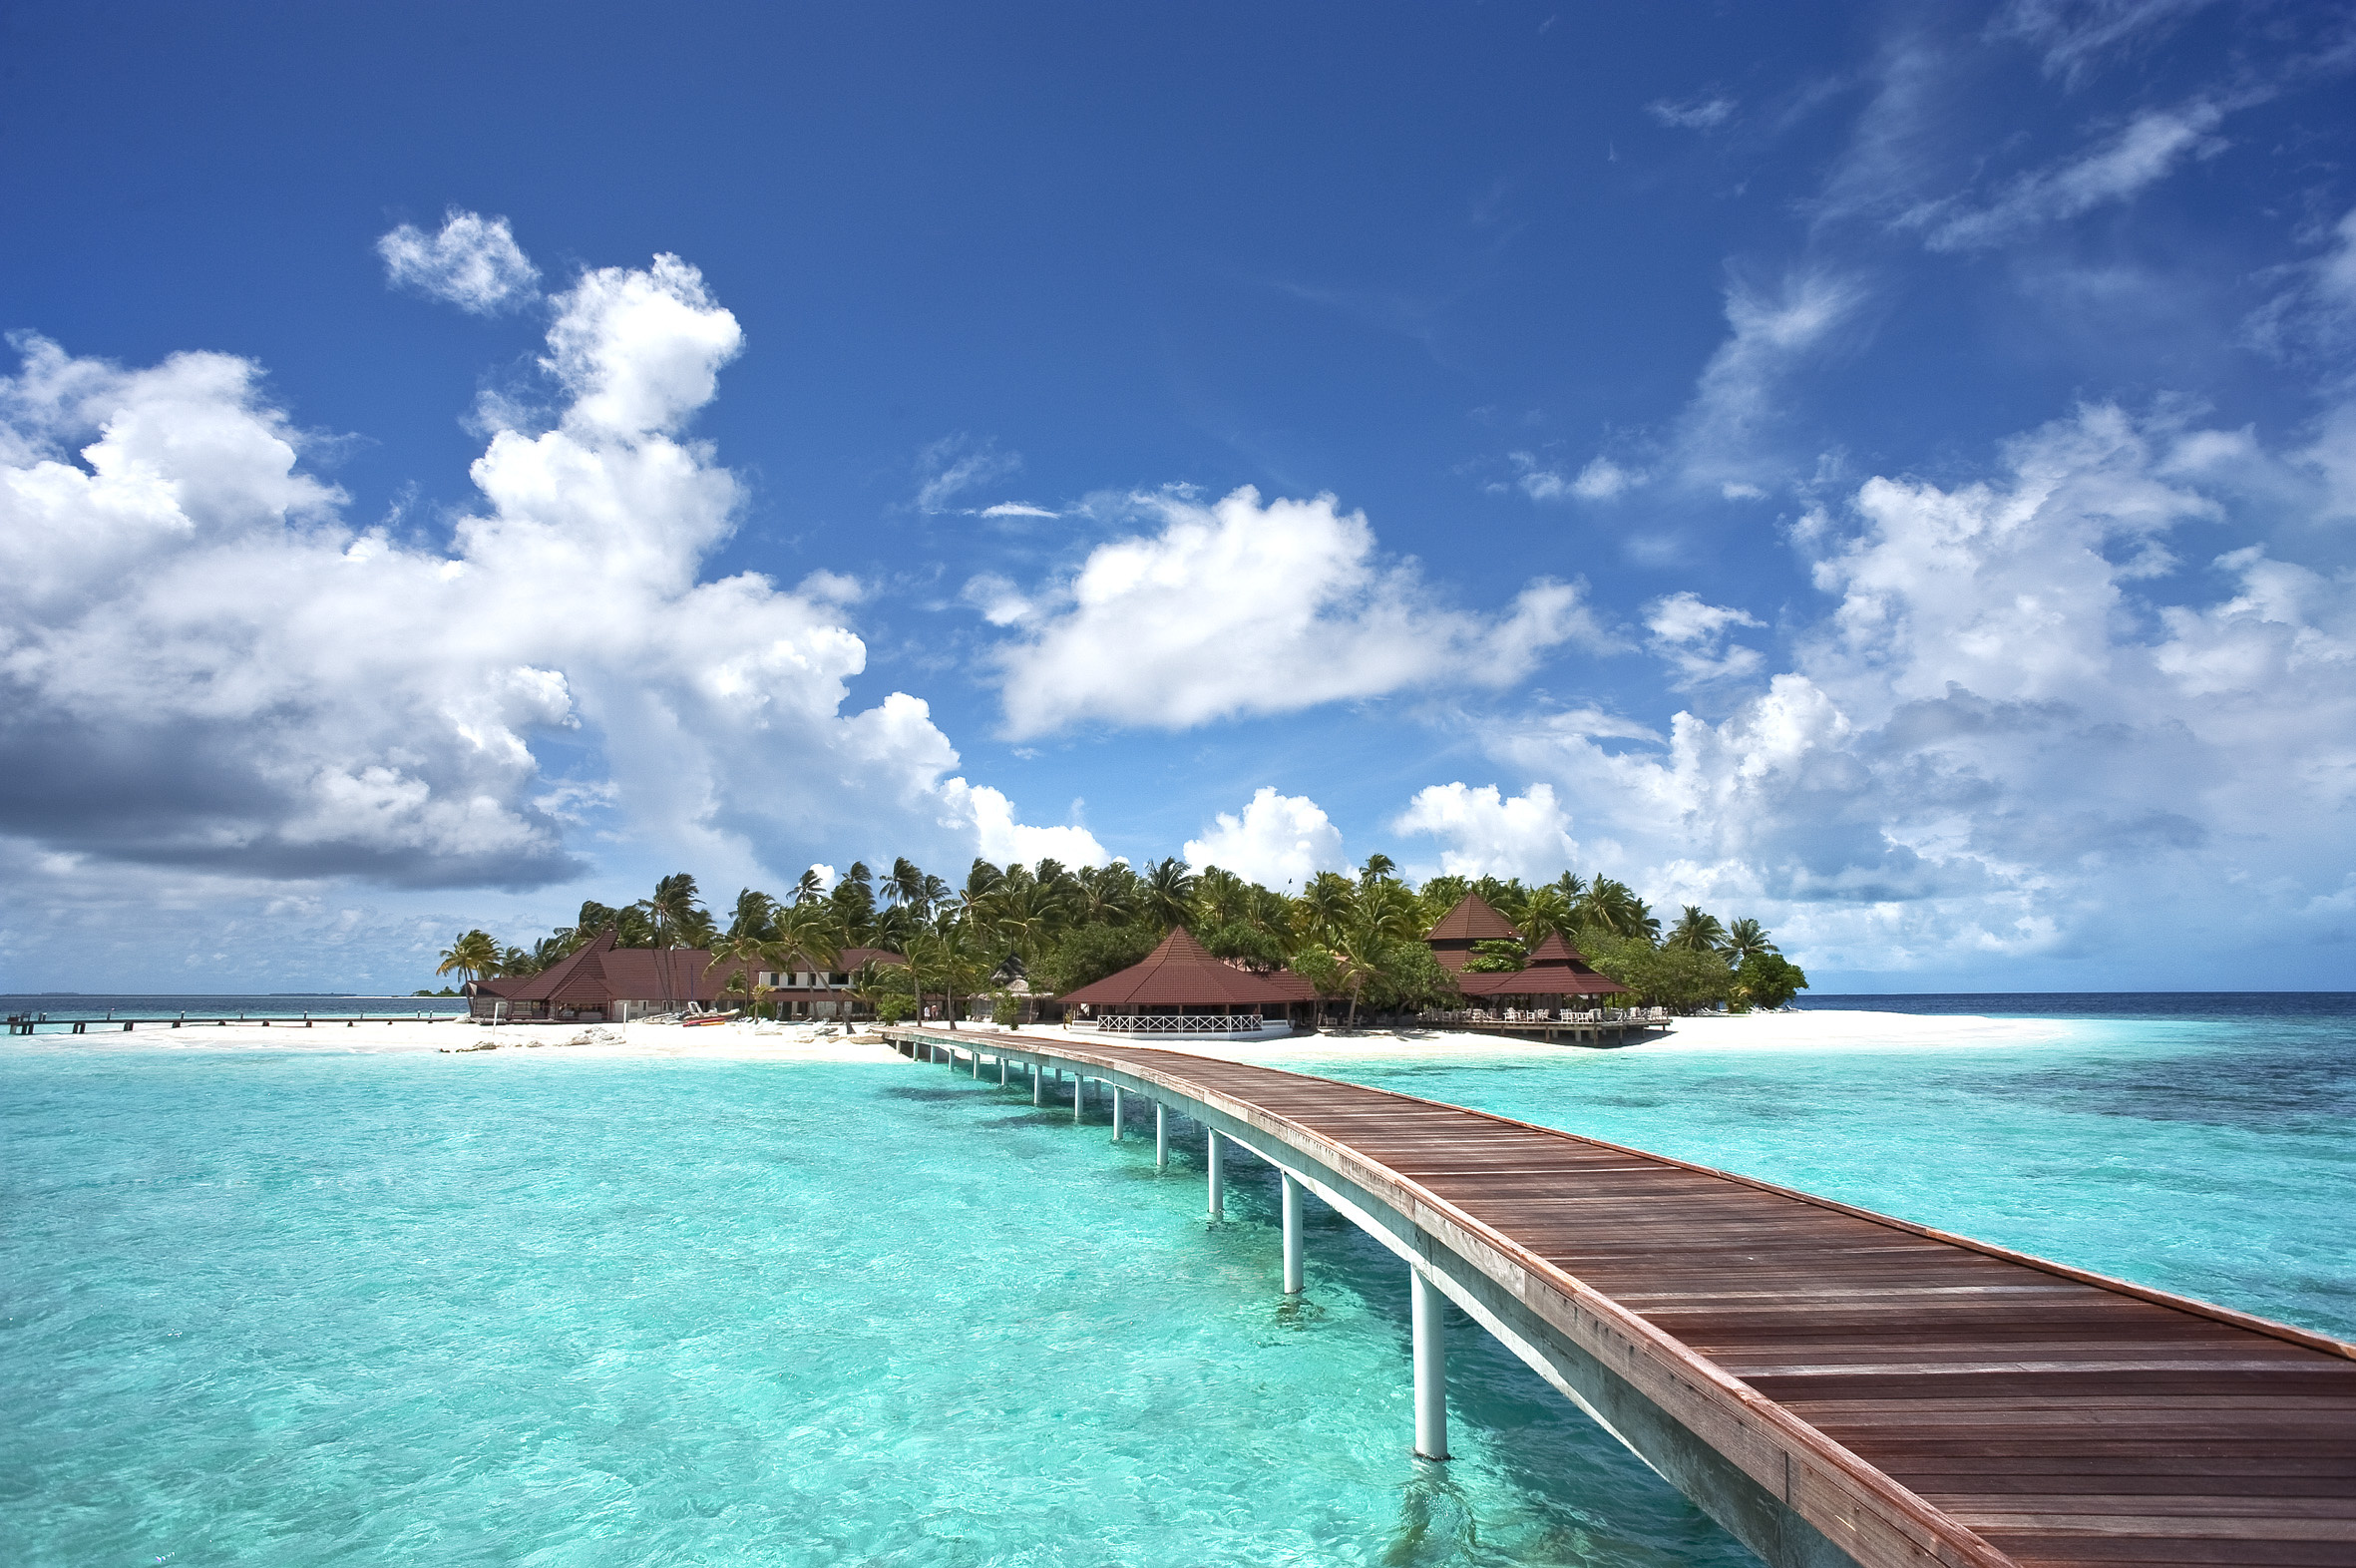 Tropical Hd Wallpaper Background Image 2362x1572 Id400074